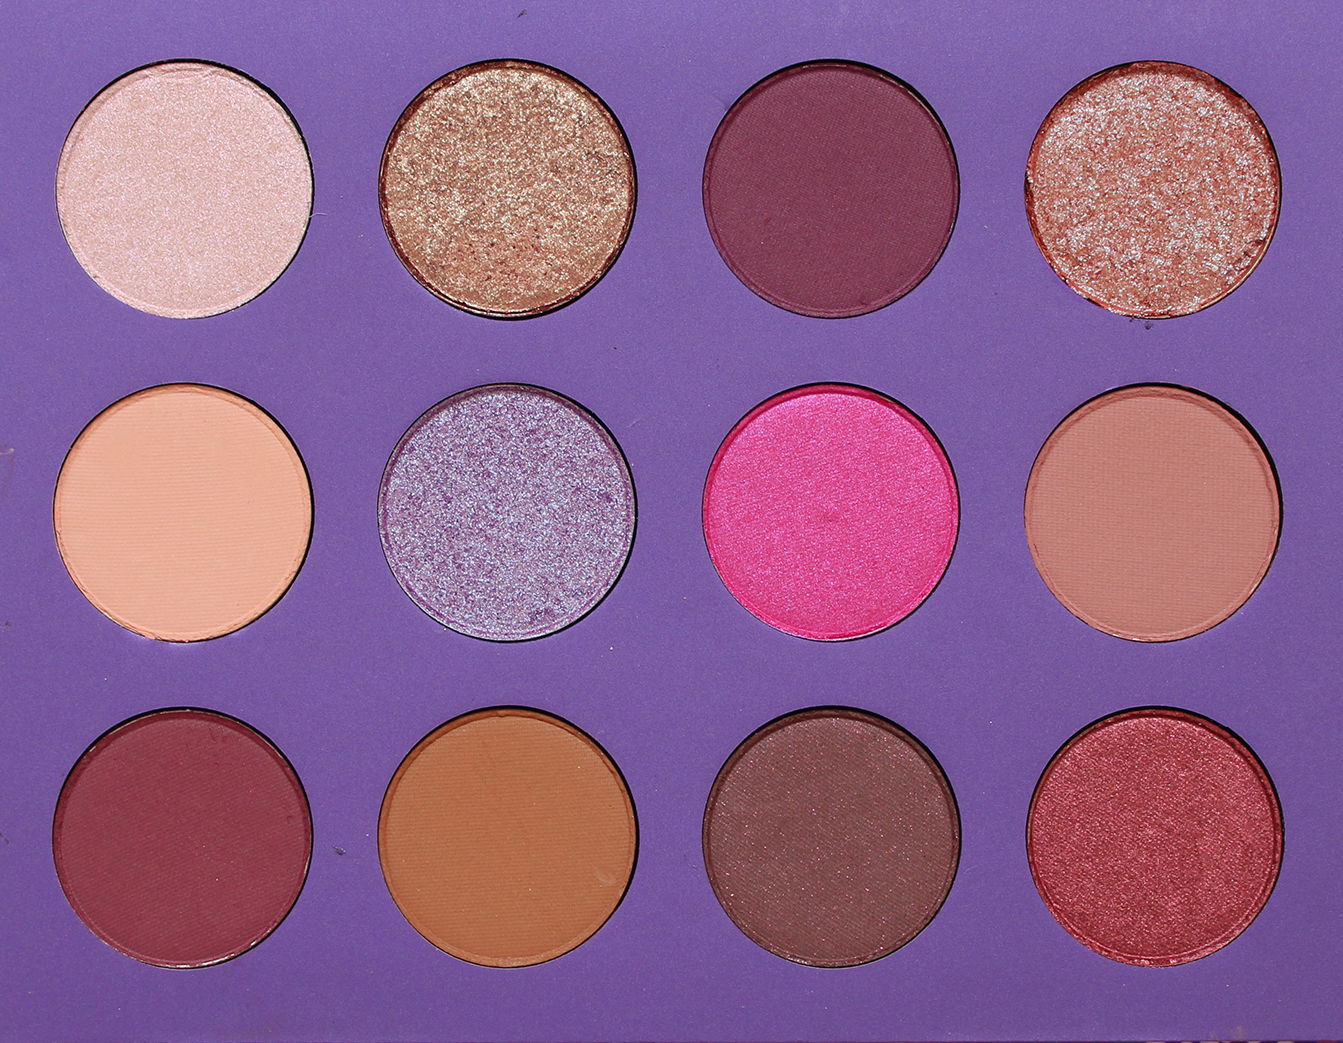 COLOURPOP | Element Of Surprise Pressed Shadow Palette - Review + Swatches - CassandraMyee